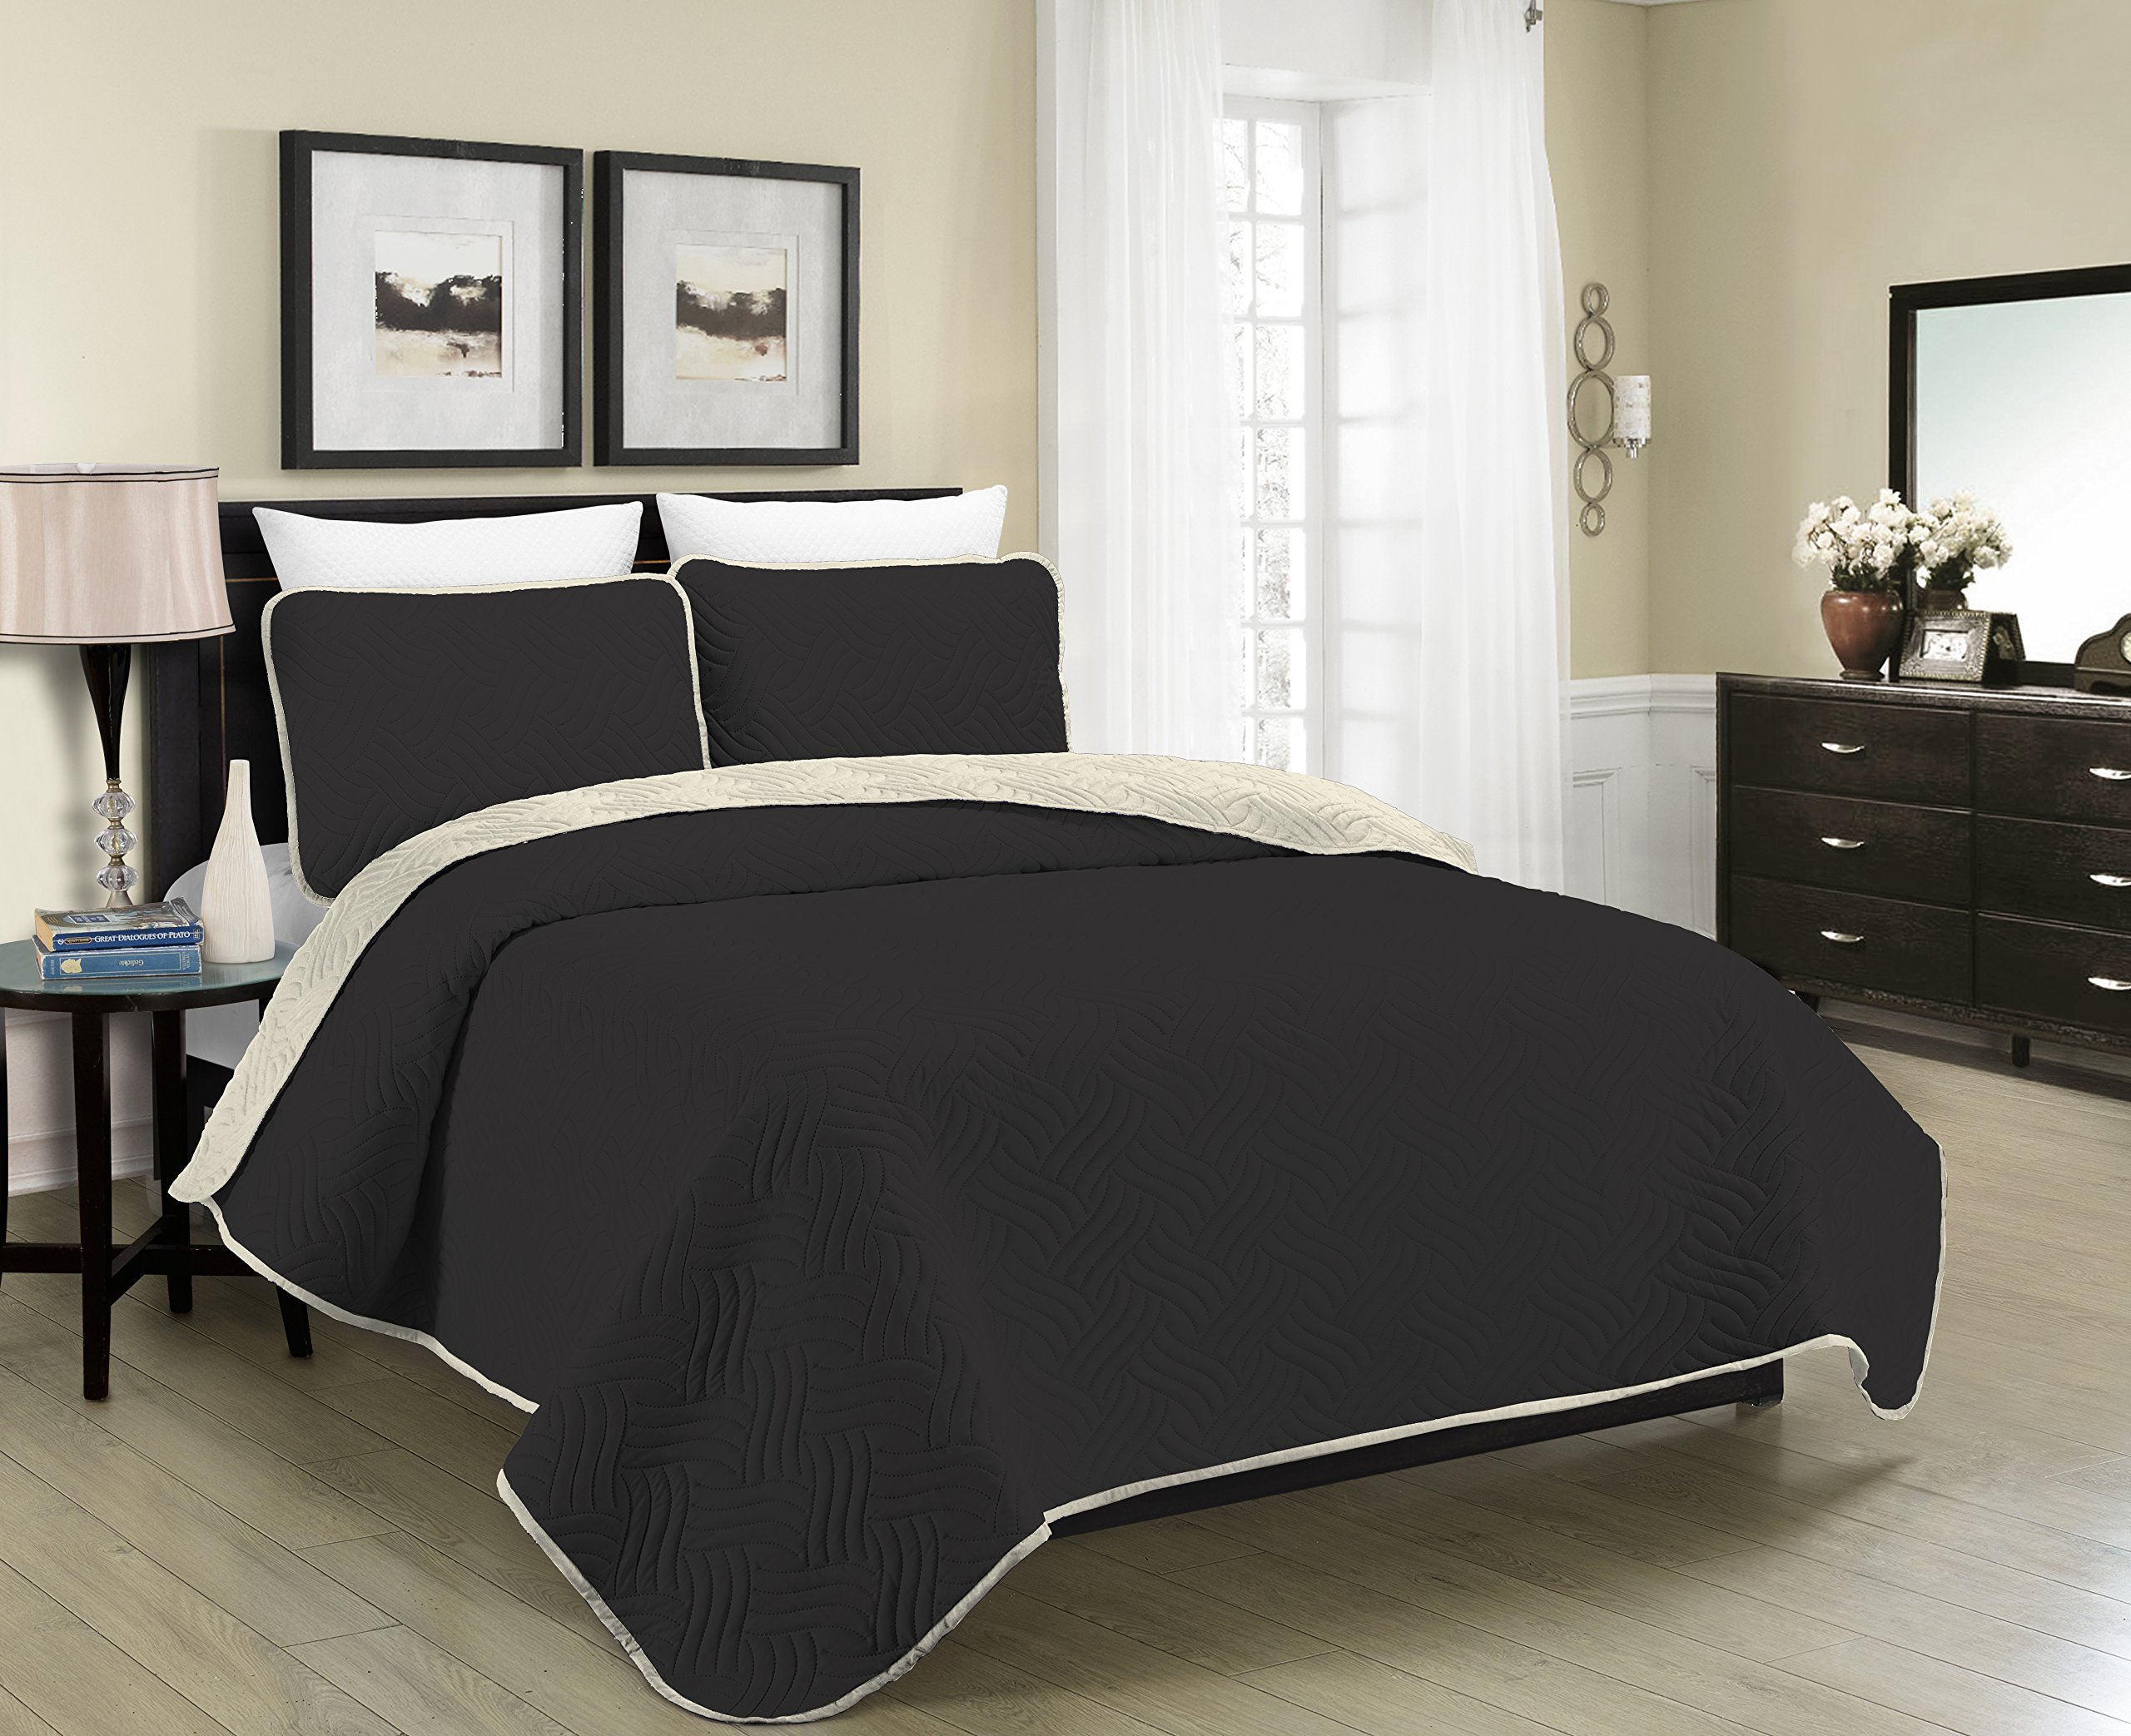 Blissful Living Reversible Luxury Pinsonic Solid Quilt Set Including Shams – Lightweight and Soft for All Year Round Comfort, Available in Twin, Full/Queen and King Size (Black/Cream, Twin)